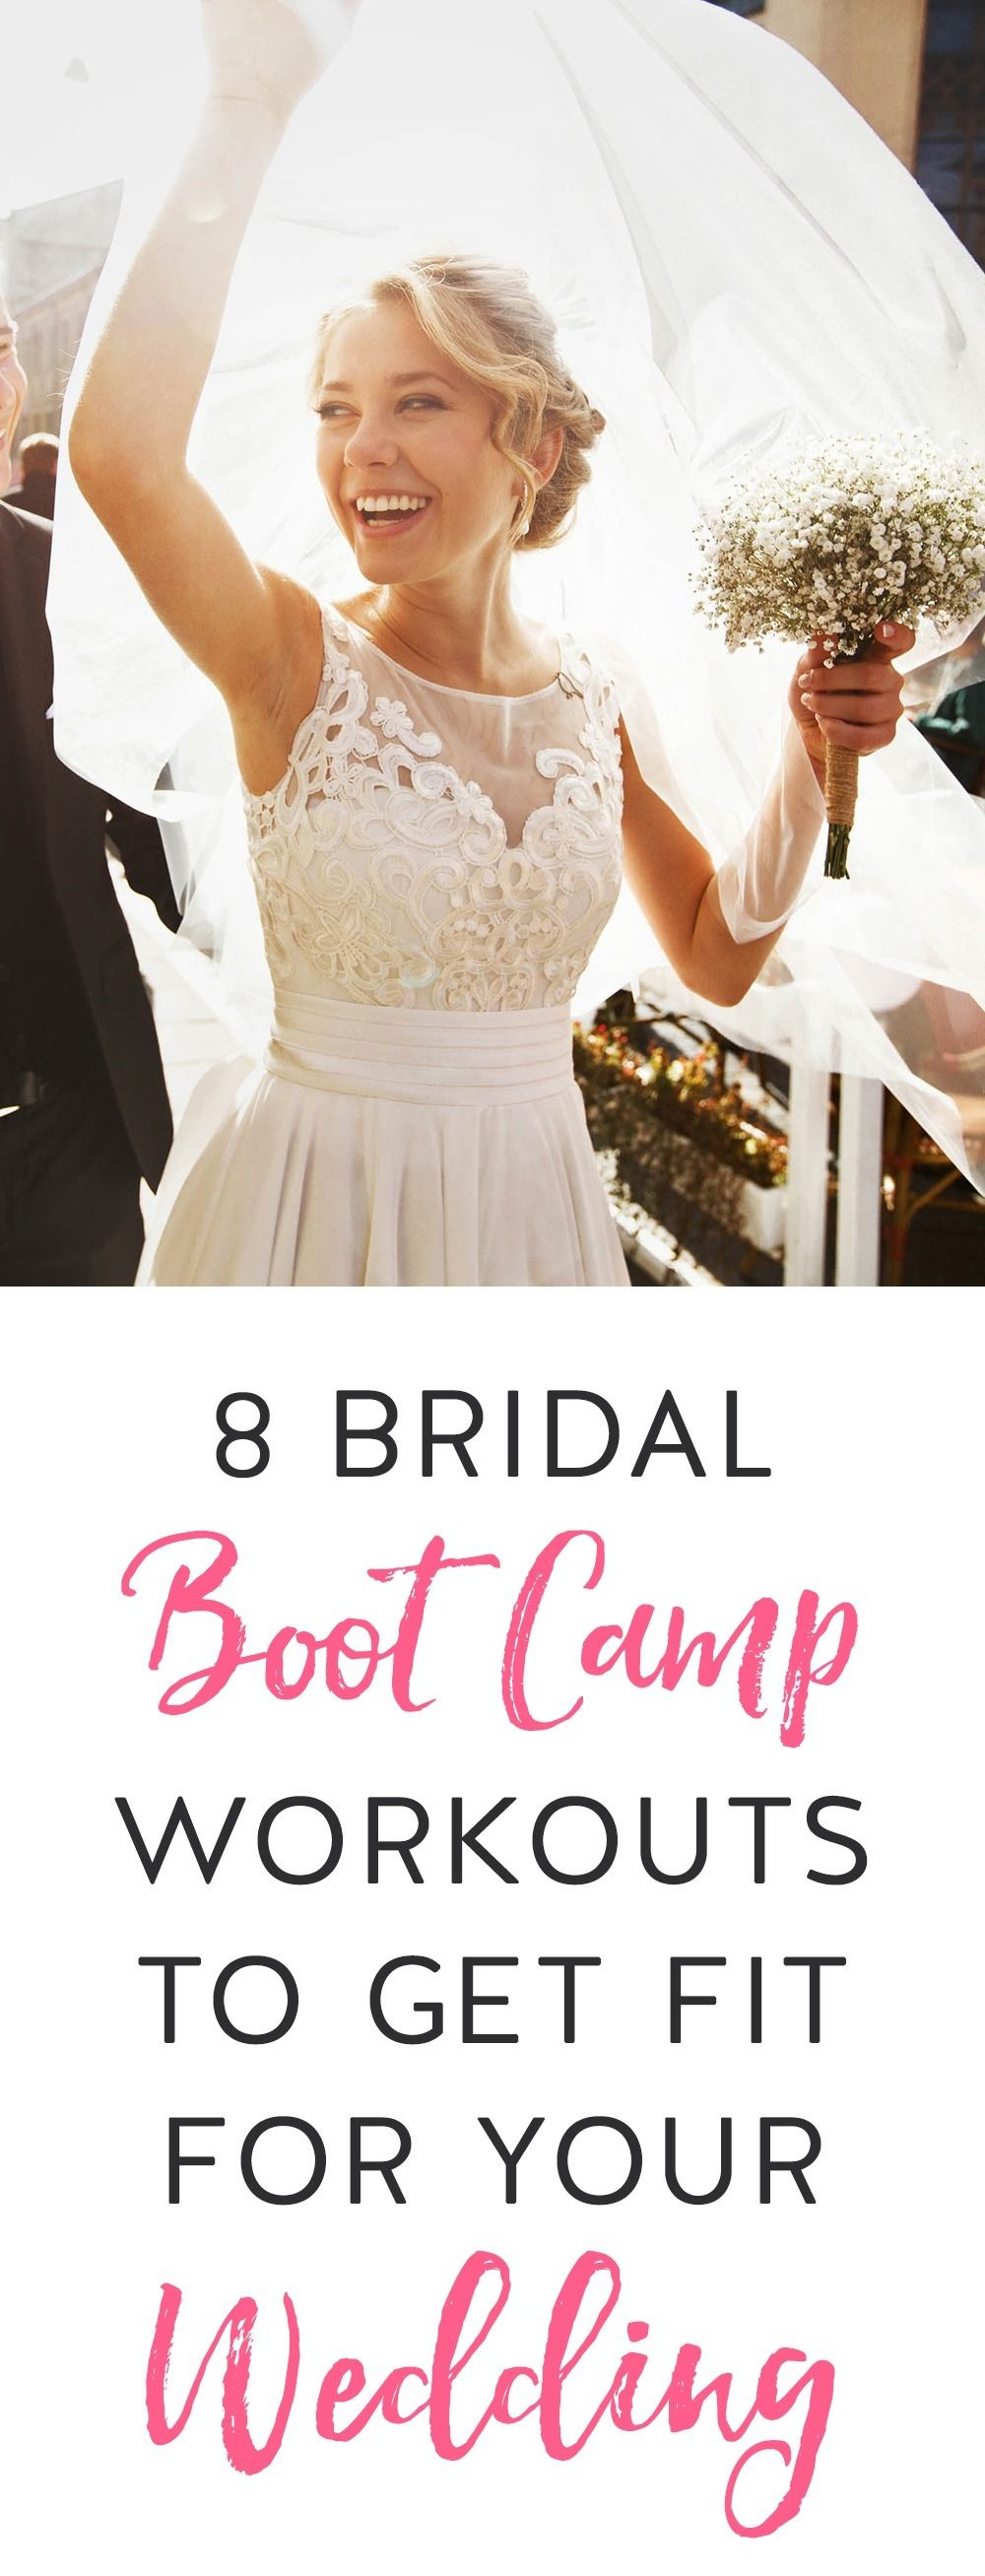 Whether you need to lose weight, tone up or stay exactly the same size, fitness can play an important part in your preparations for your big wedding day. Check out these sweat-busting workouts.